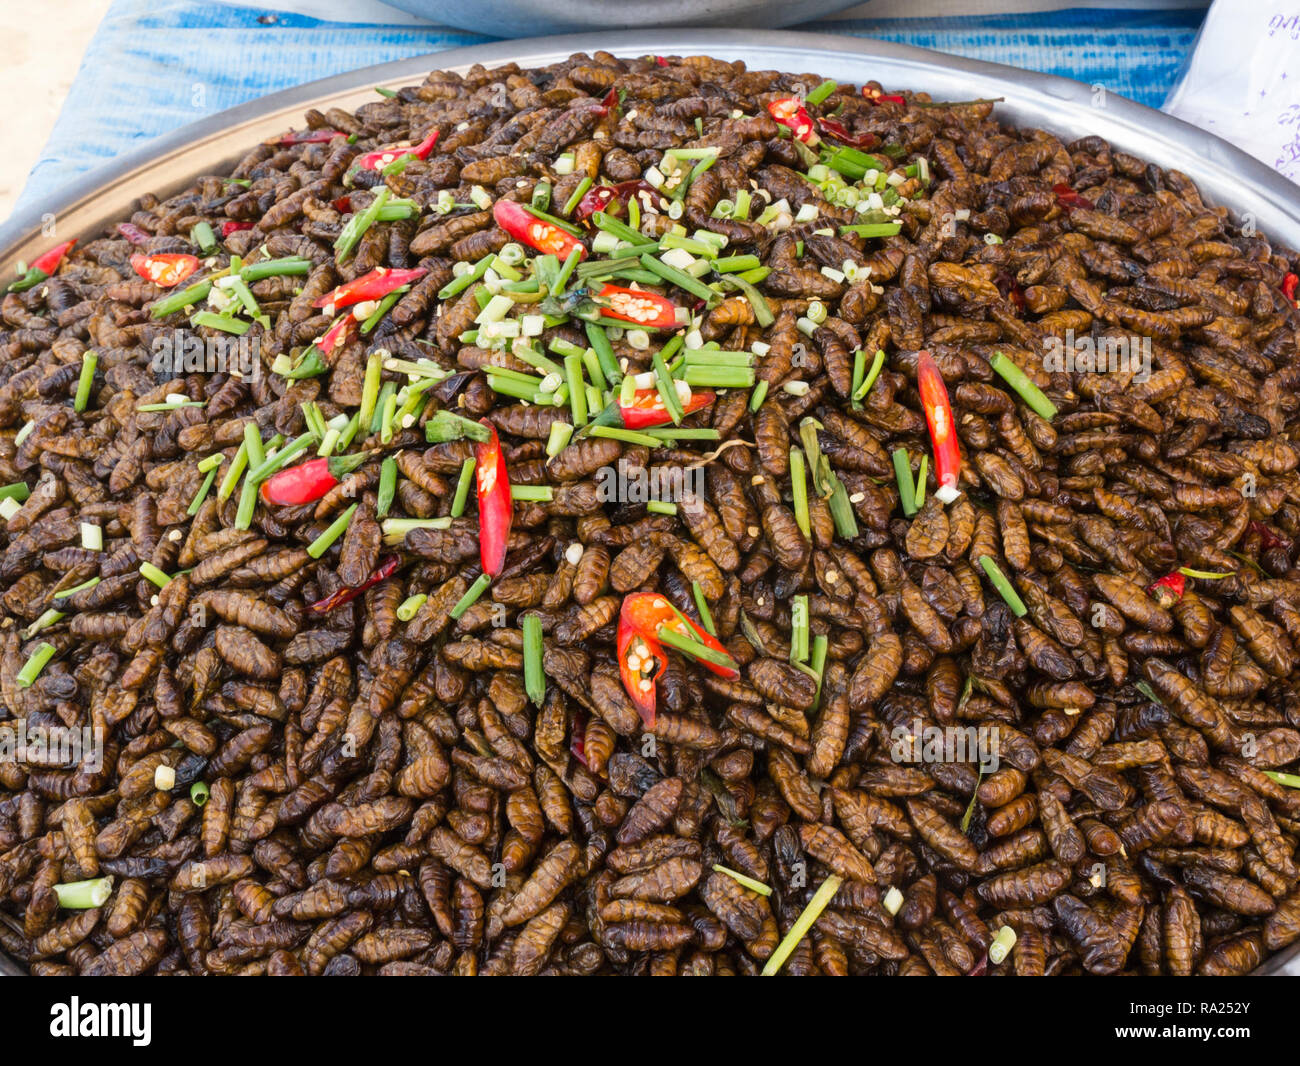 Reknown Stock Photos & Reknown Stock Images - Alamy